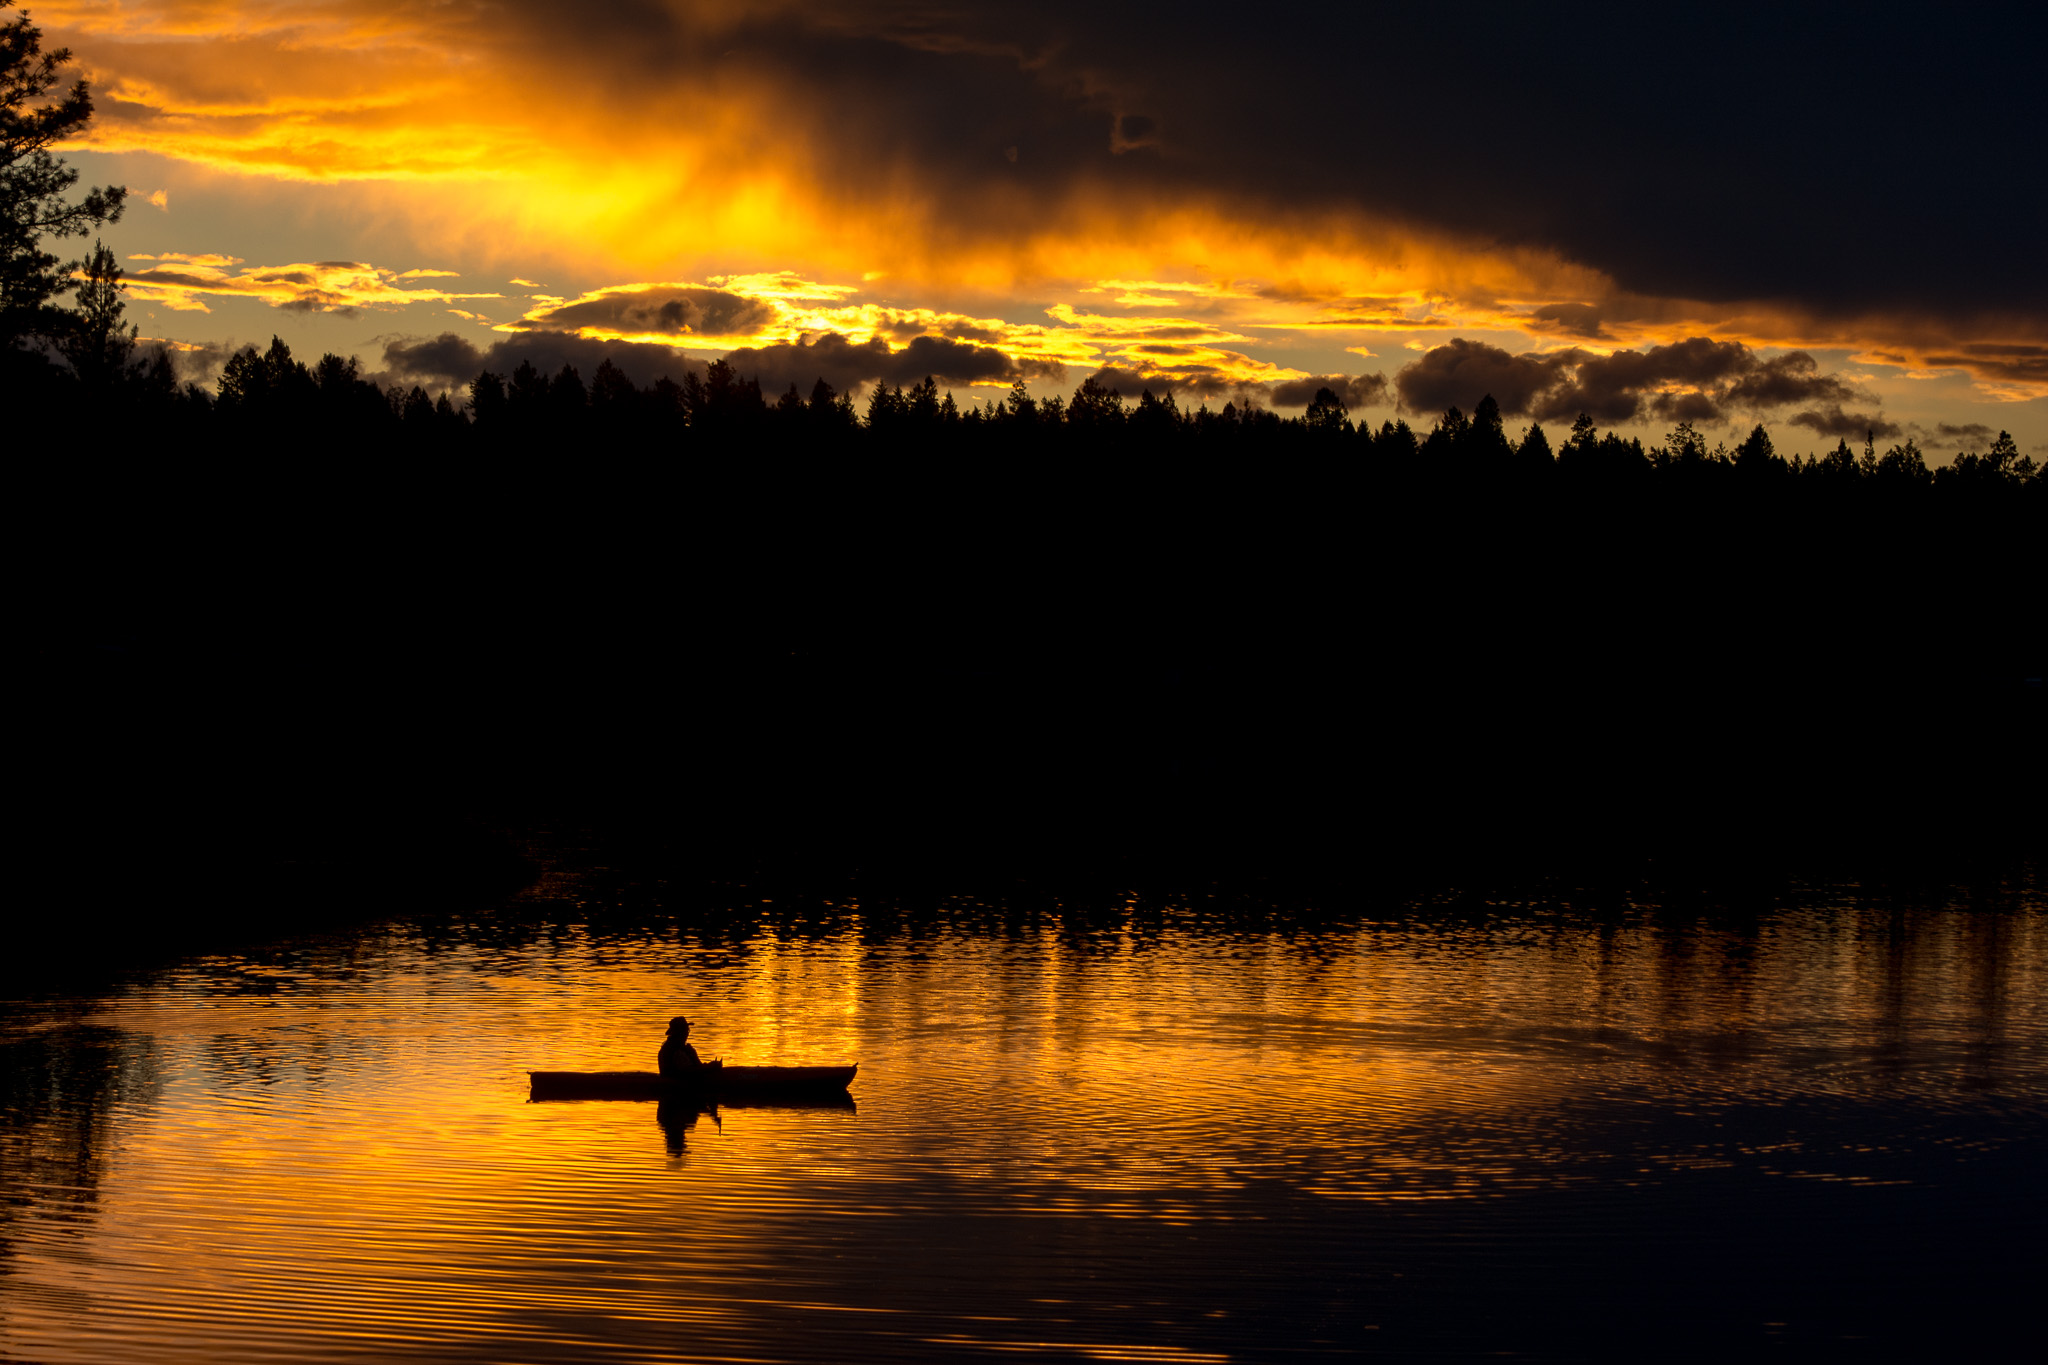 lake sunset with canoe